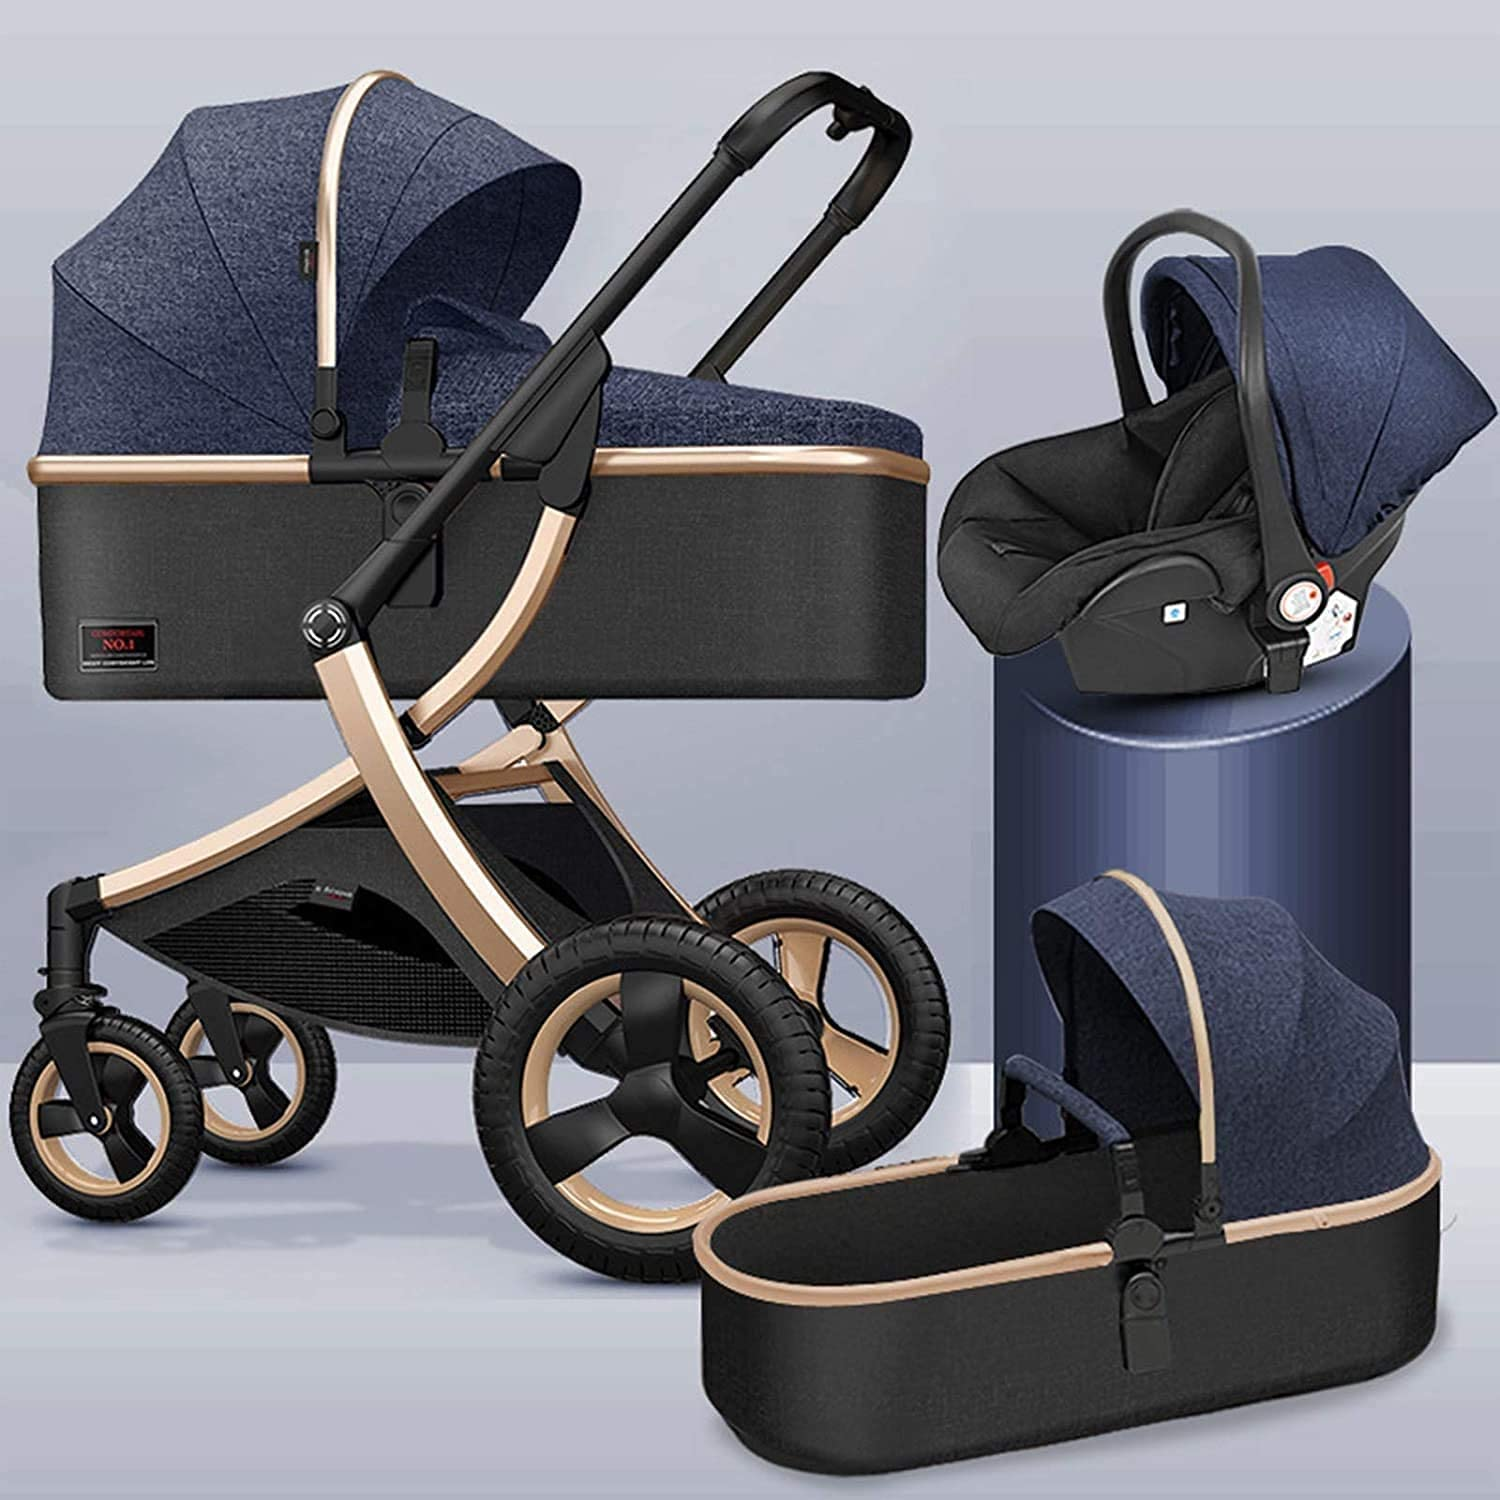 TANKKWEQ Max 82% OFF store 3 in 1 Foldable Alloy Aluminum Carriage Stroller Stroll